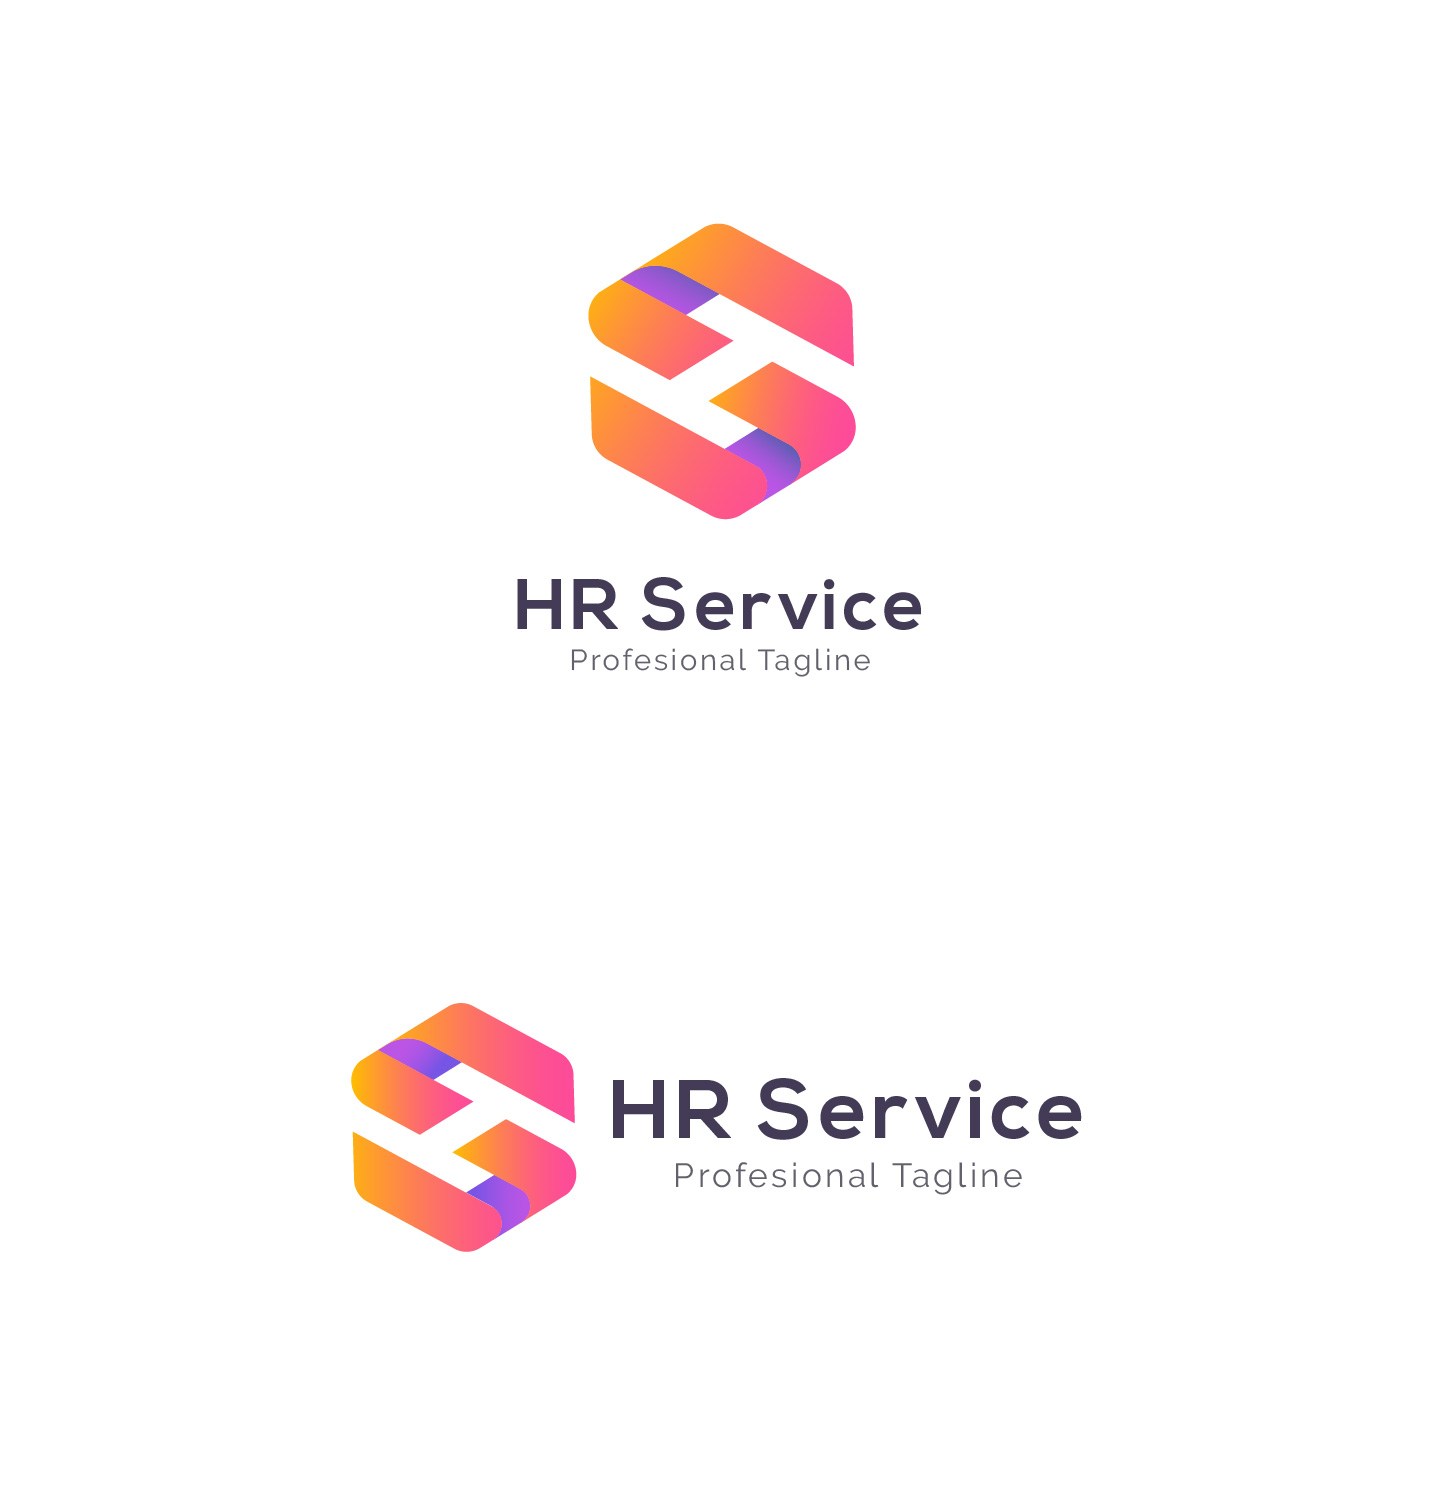 HR Service - H S Letter Logo example image 3